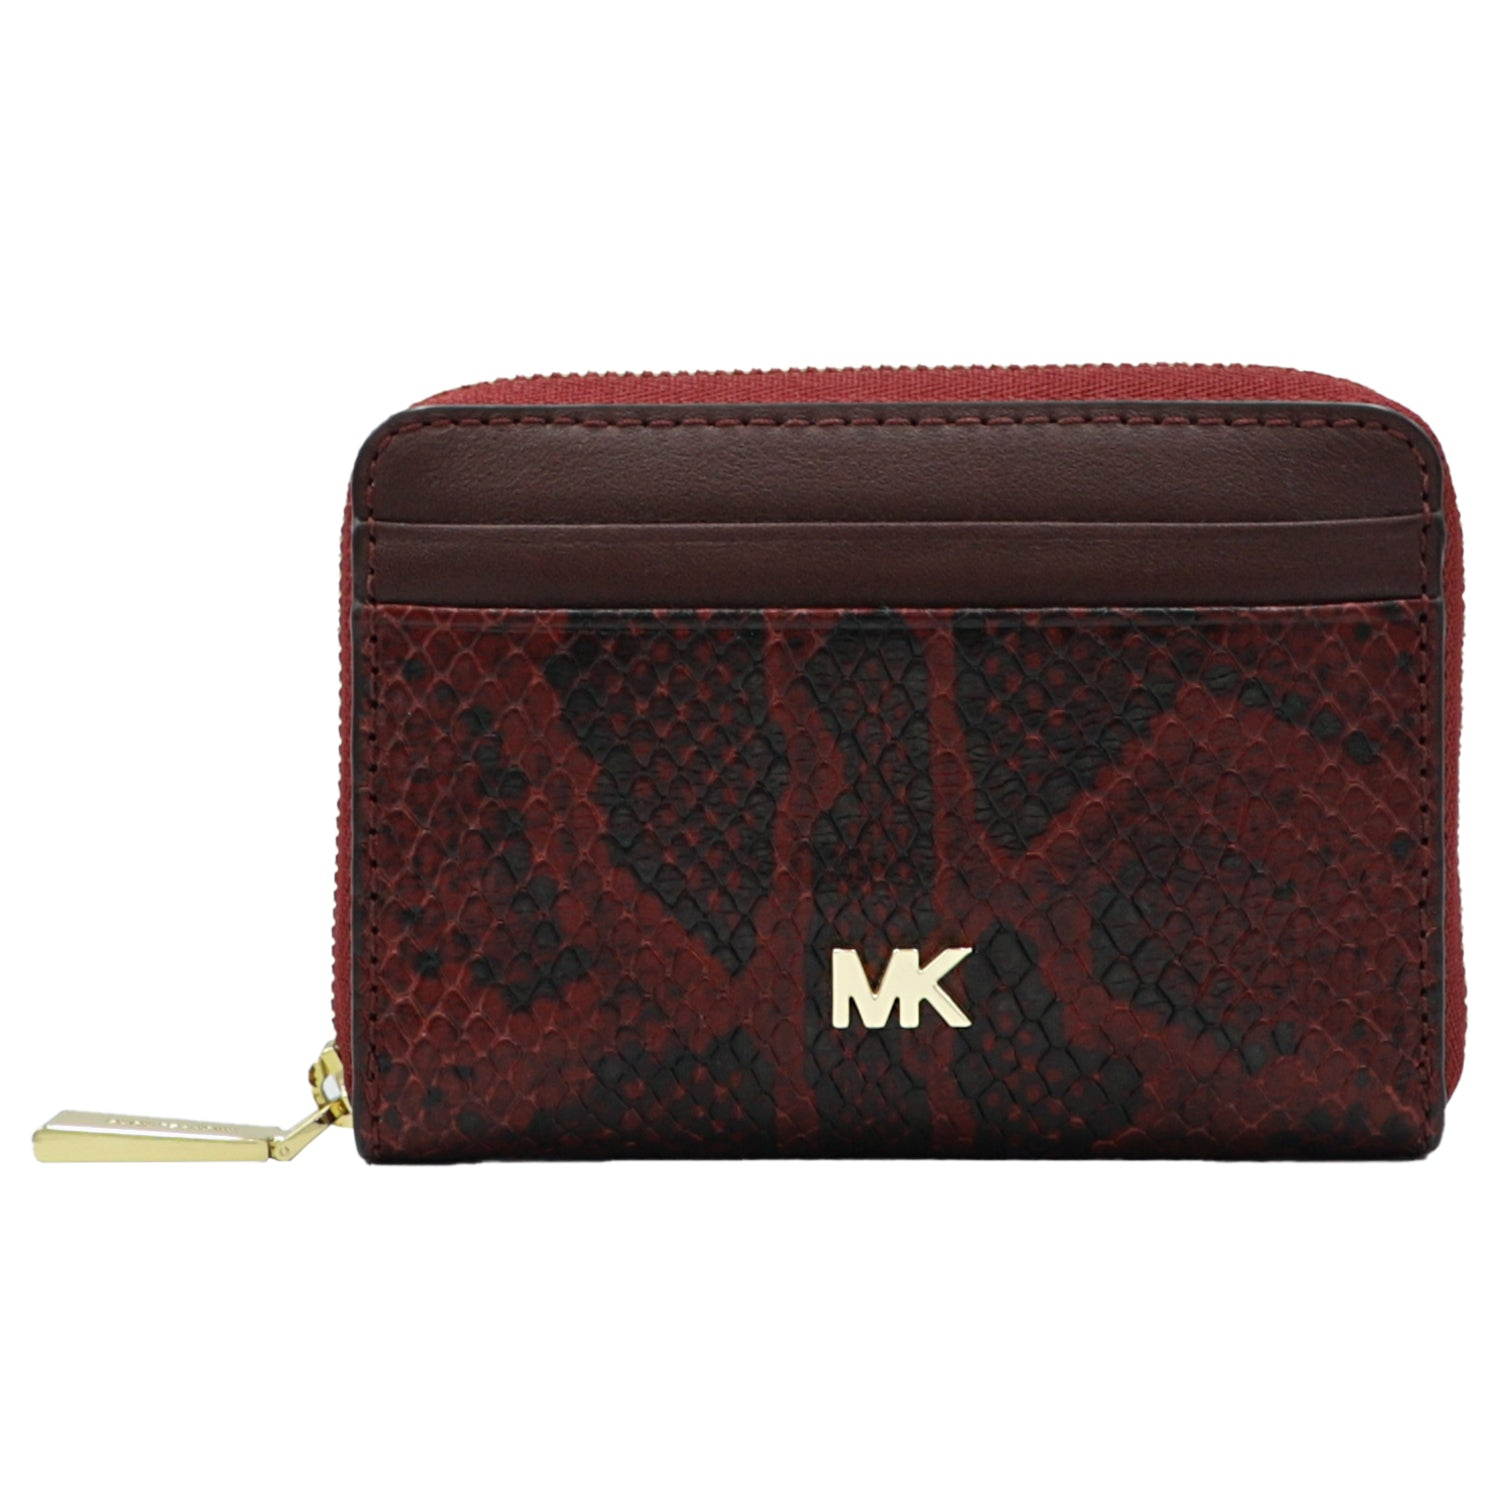 Small Tri-Color Pebbled Leather | Shop MICHAEL KORS Online India